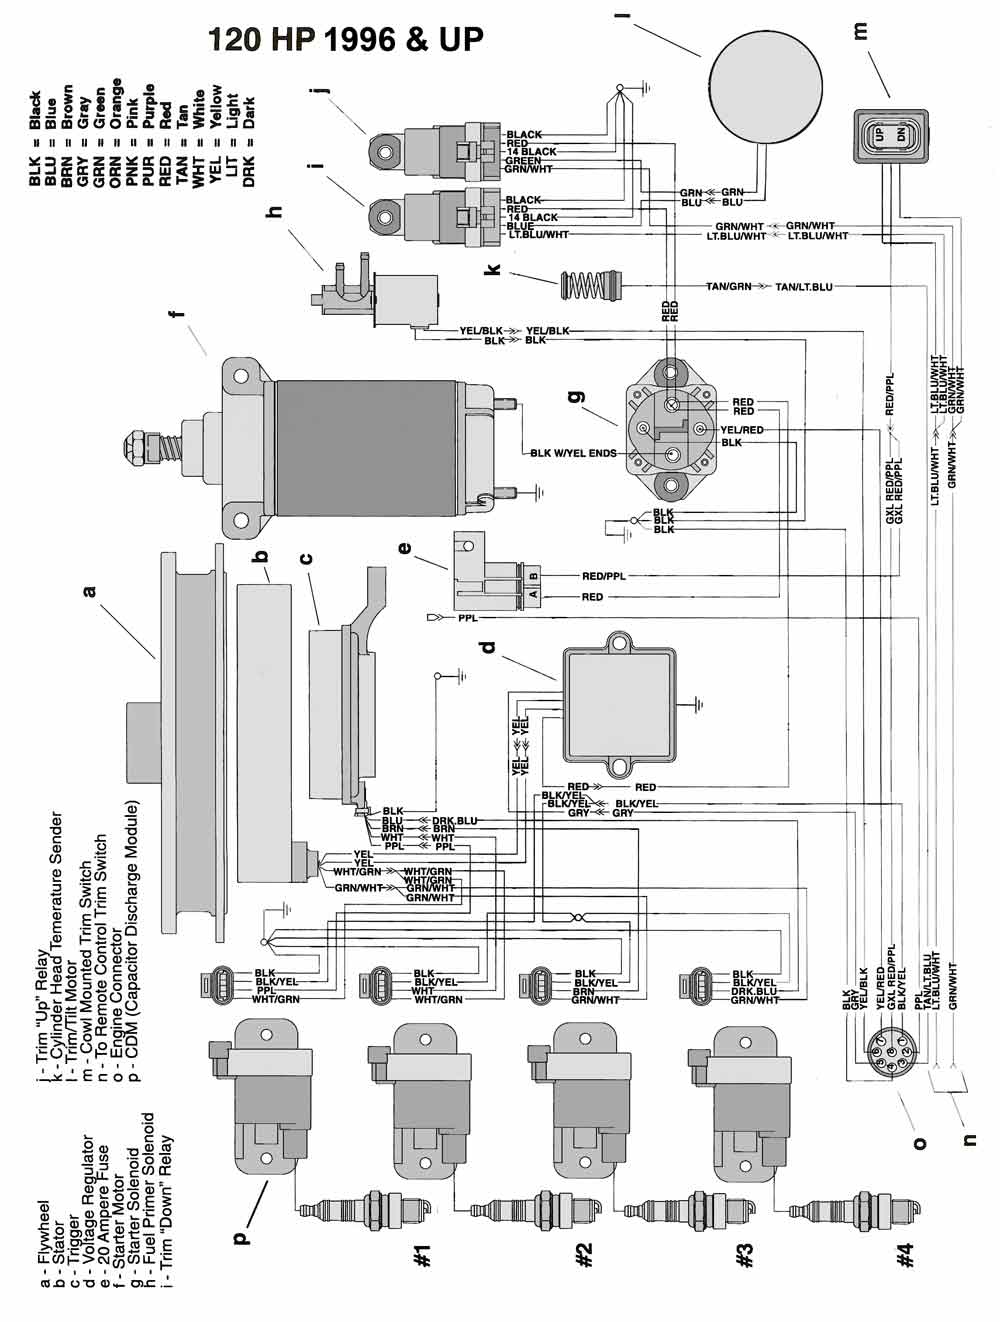 force 40 hp mercury outboard wiring diagram wiring diagram todaysforce 40 hp mercury tachometer wiring diagram wiring diagram todays mariner outboard wiring harness diagram force 40 hp mercury outboard wiring diagram